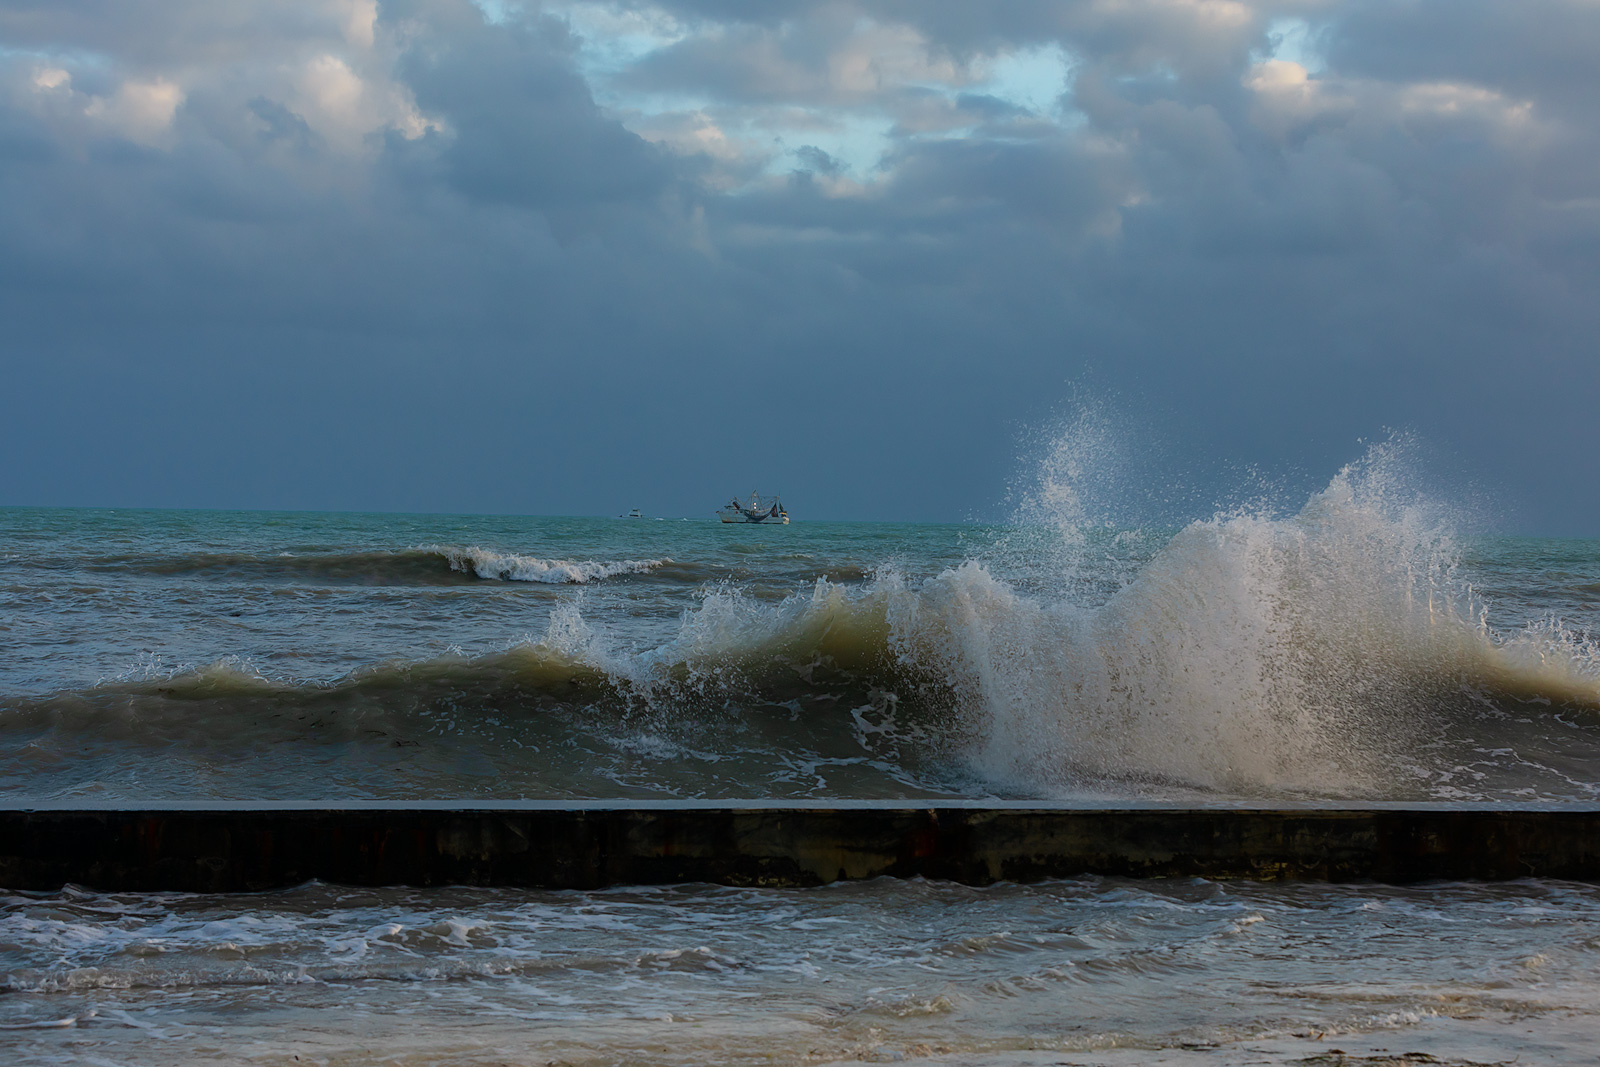 Large waves at Key West's beach on the Florida Keys.